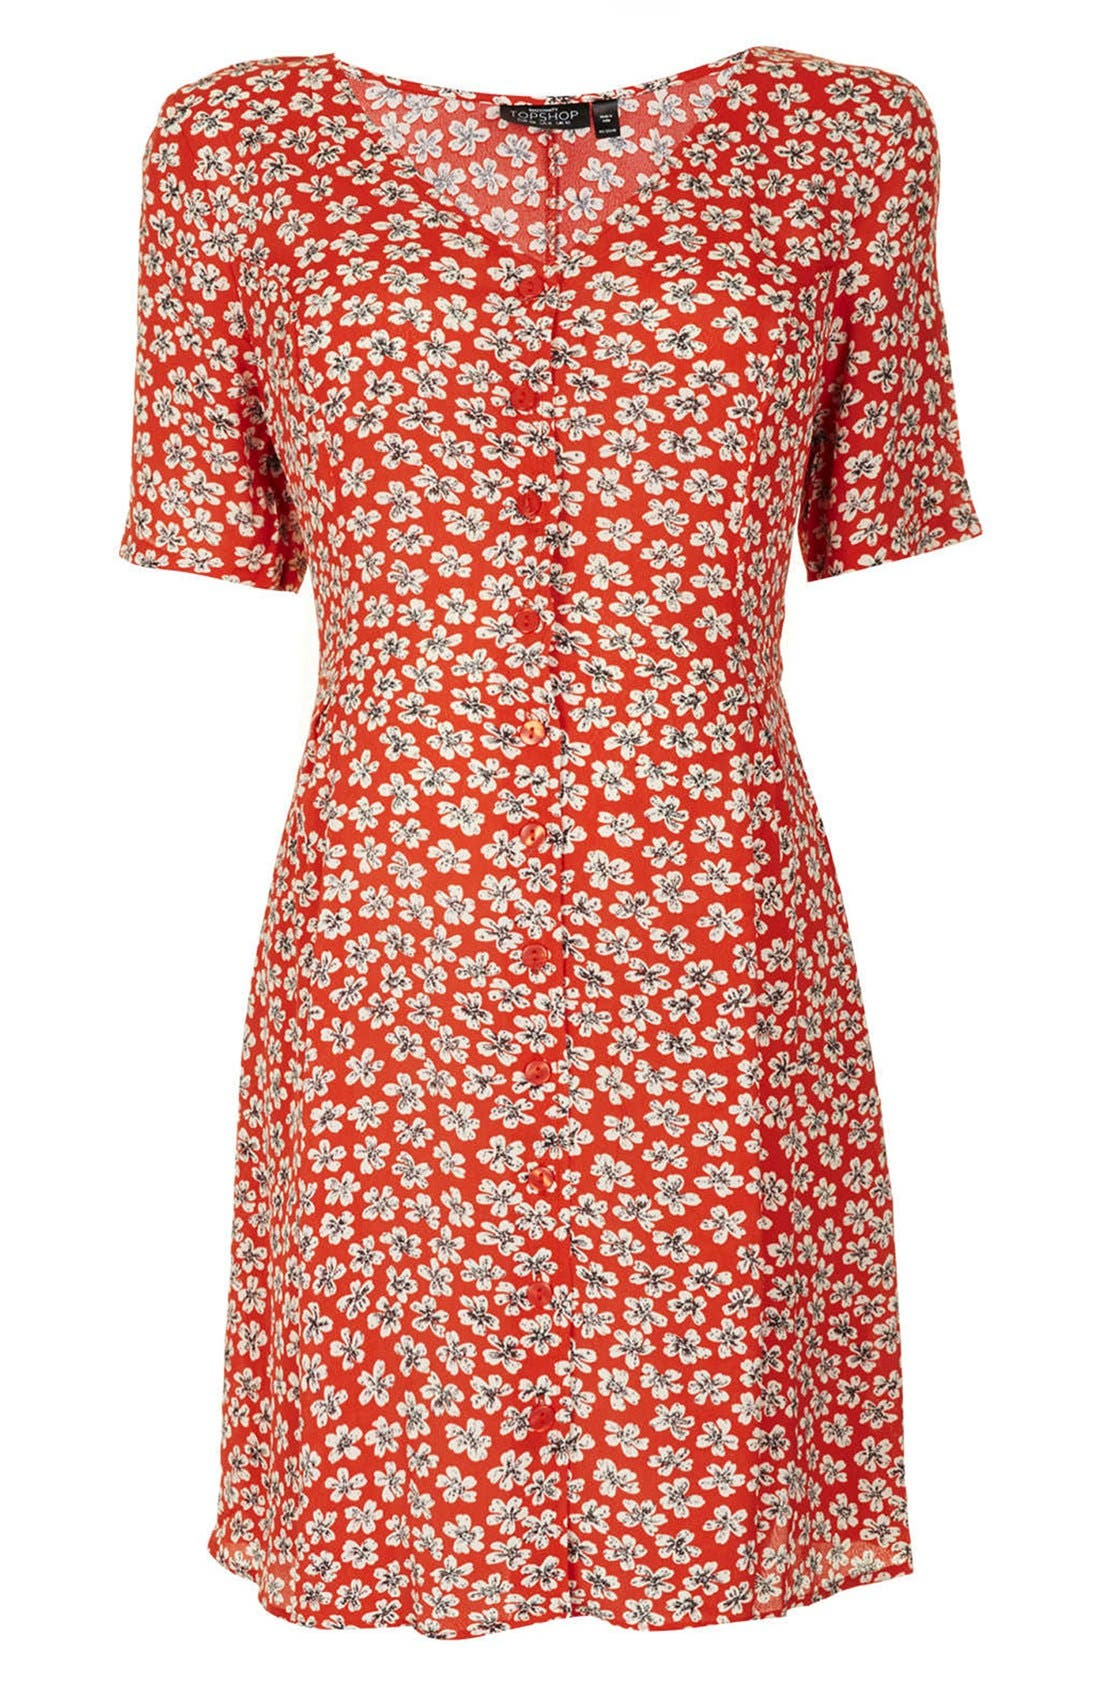 Main Image - Topshop 'Daisy' Floral Maternity Tea Dress